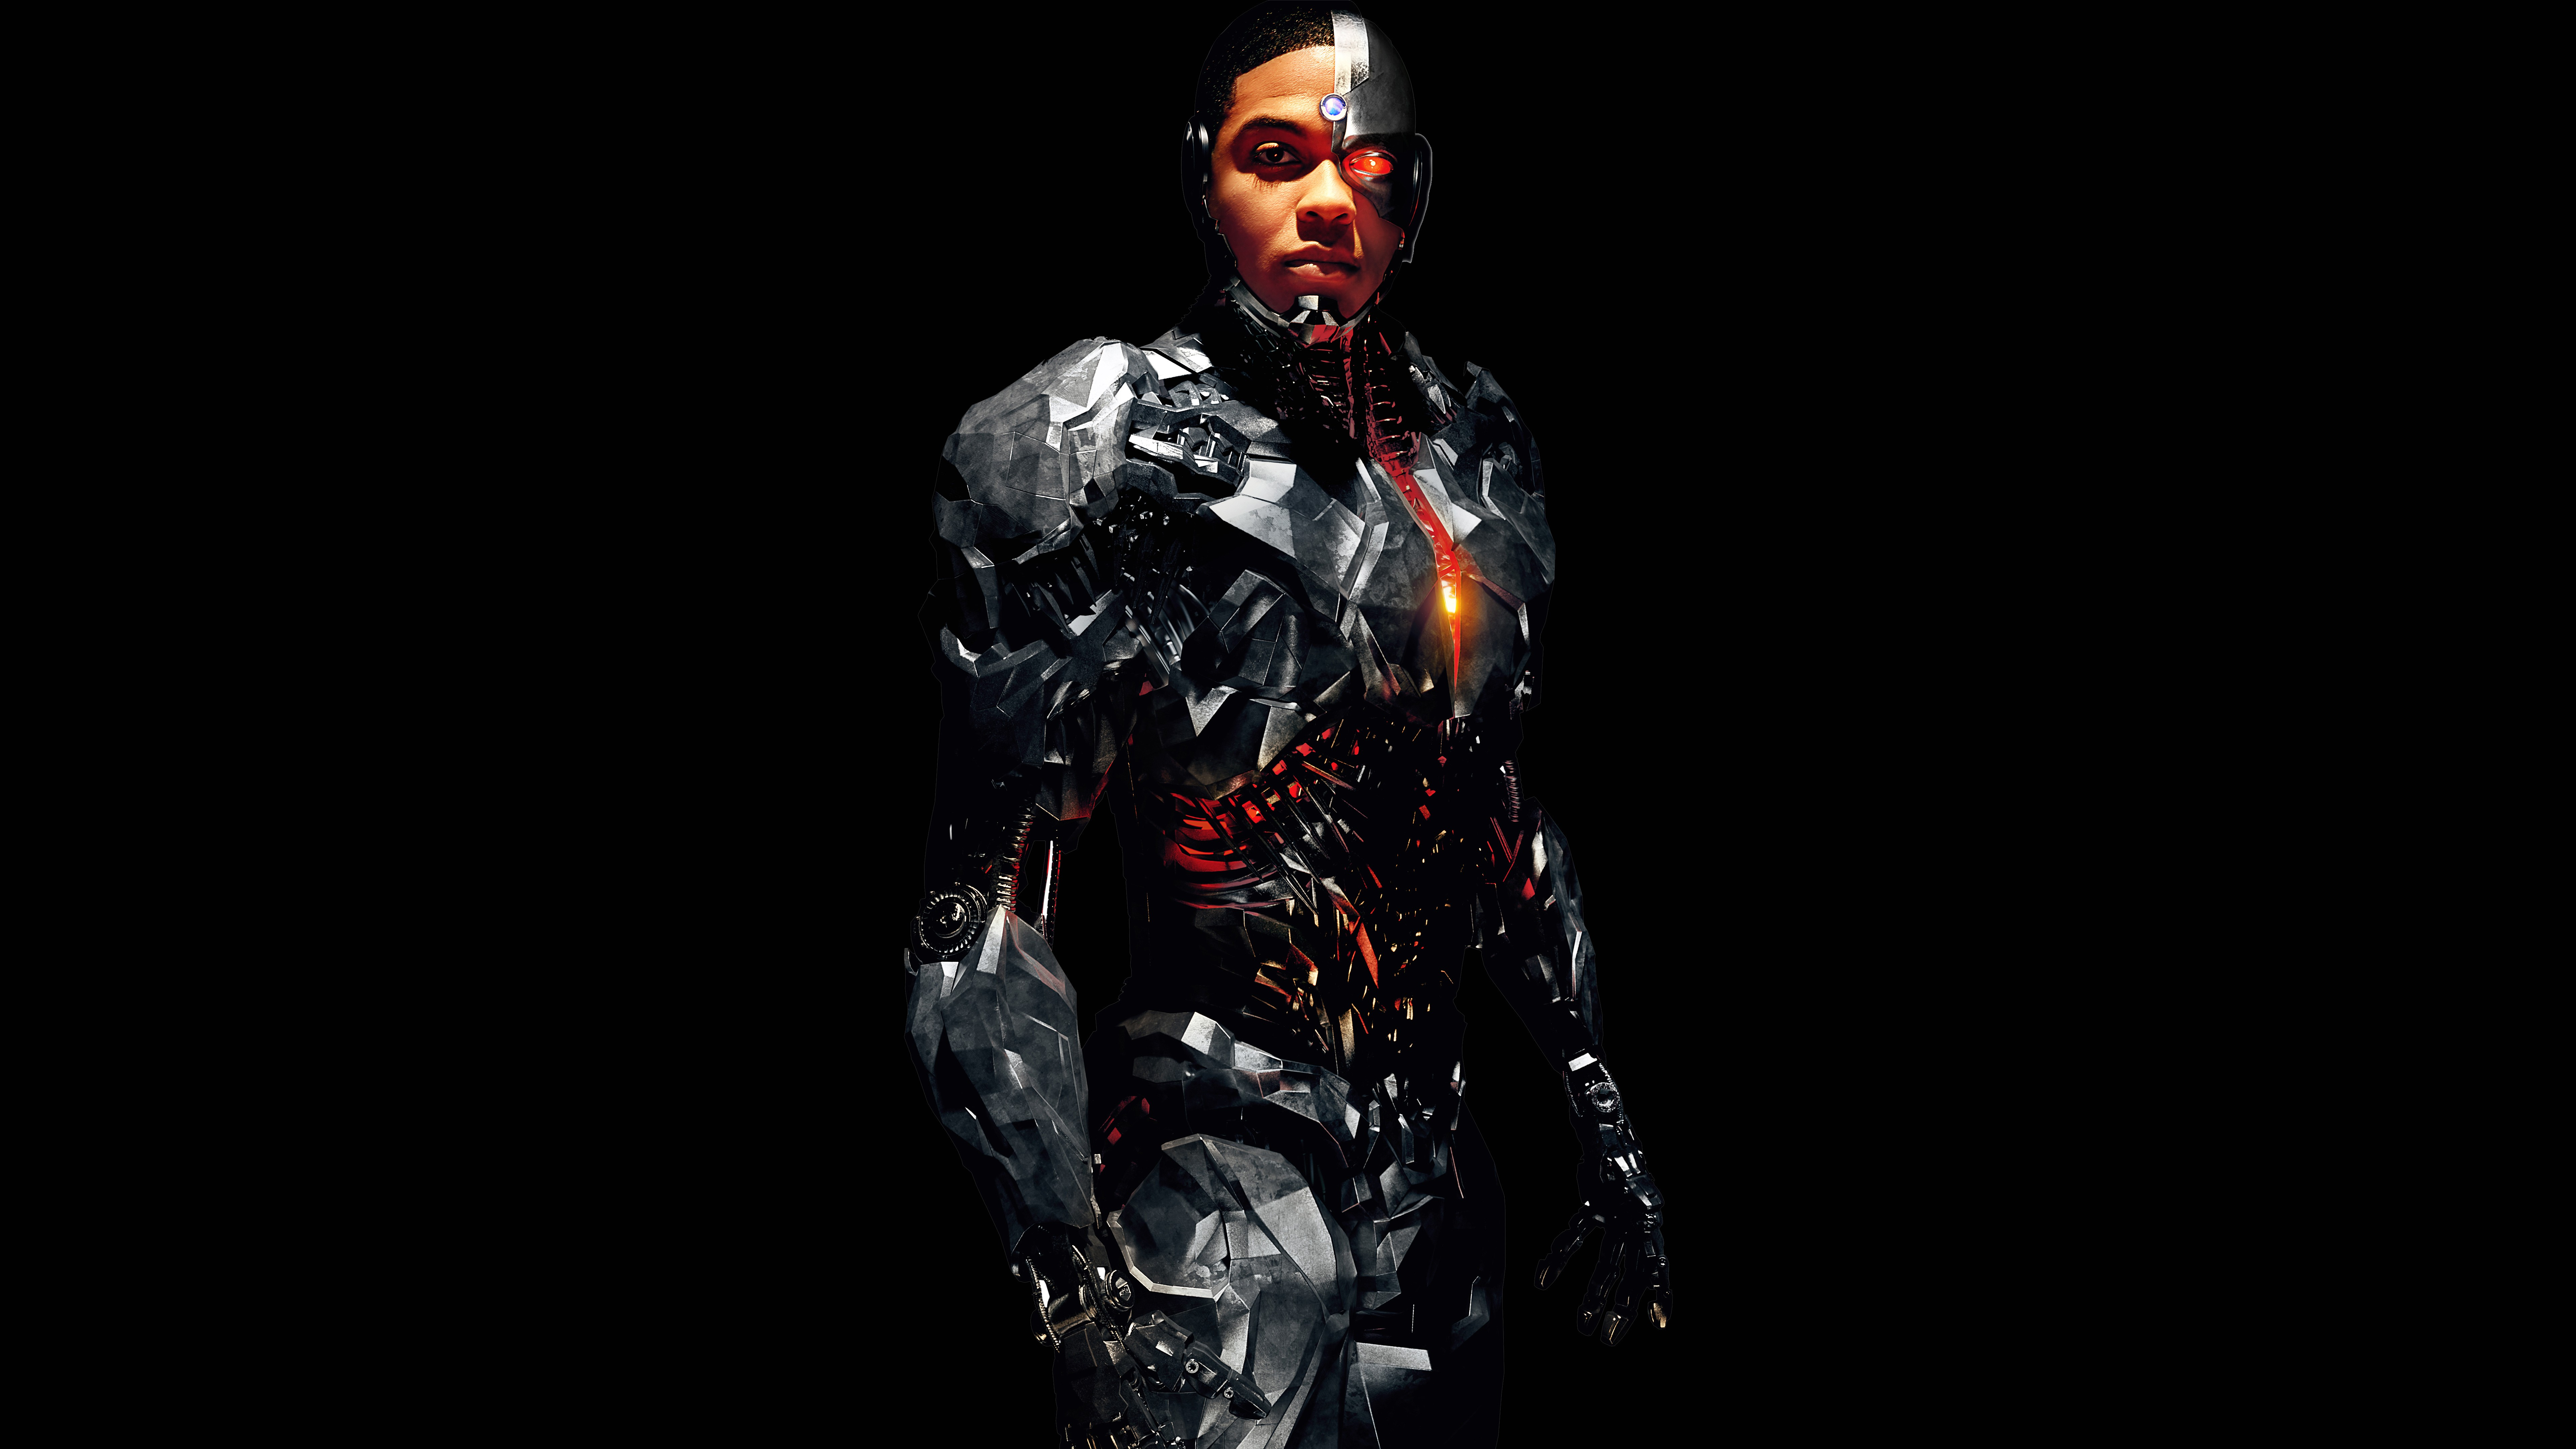 Justice League Movie Hd Movies 4k Wallpapers Images: Cyborg Justice League 8k, HD Movies, 4k Wallpapers, Images